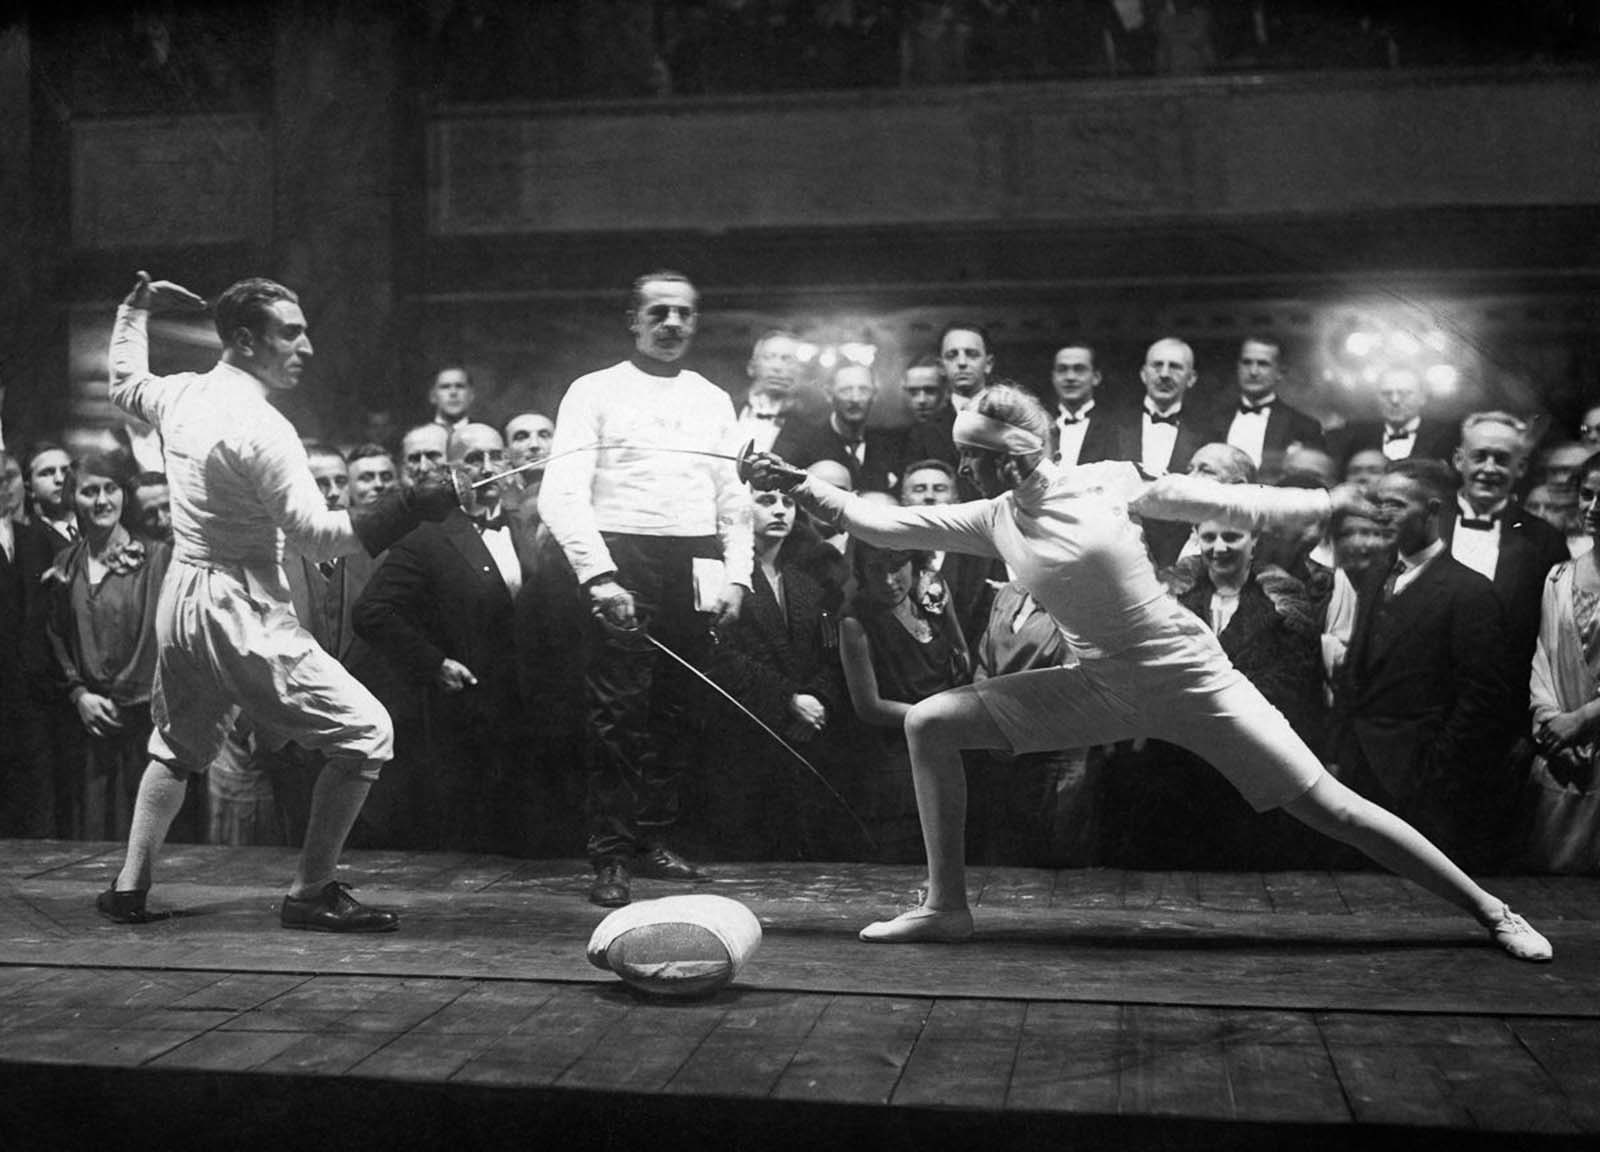 Mayer practices against a male opponent at the 1928 Olympics in Amsterdam.